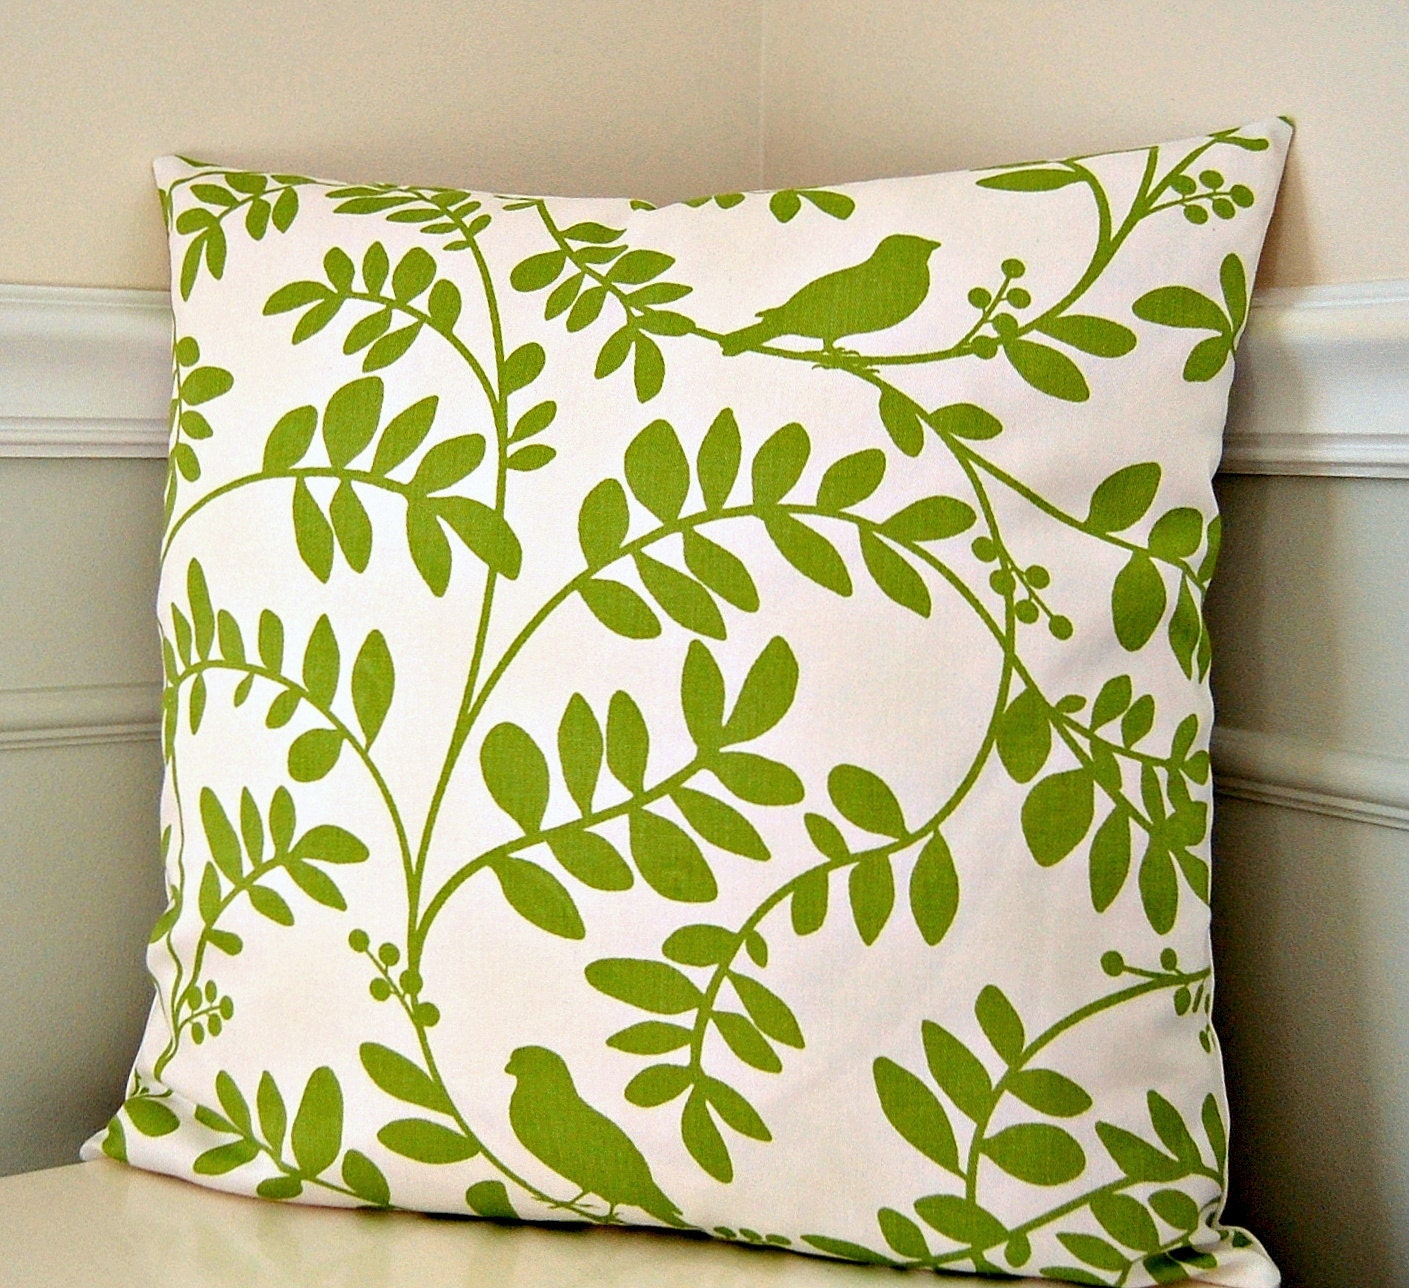 green floral pillow cover green and white throw pillow 18x18. Black Bedroom Furniture Sets. Home Design Ideas